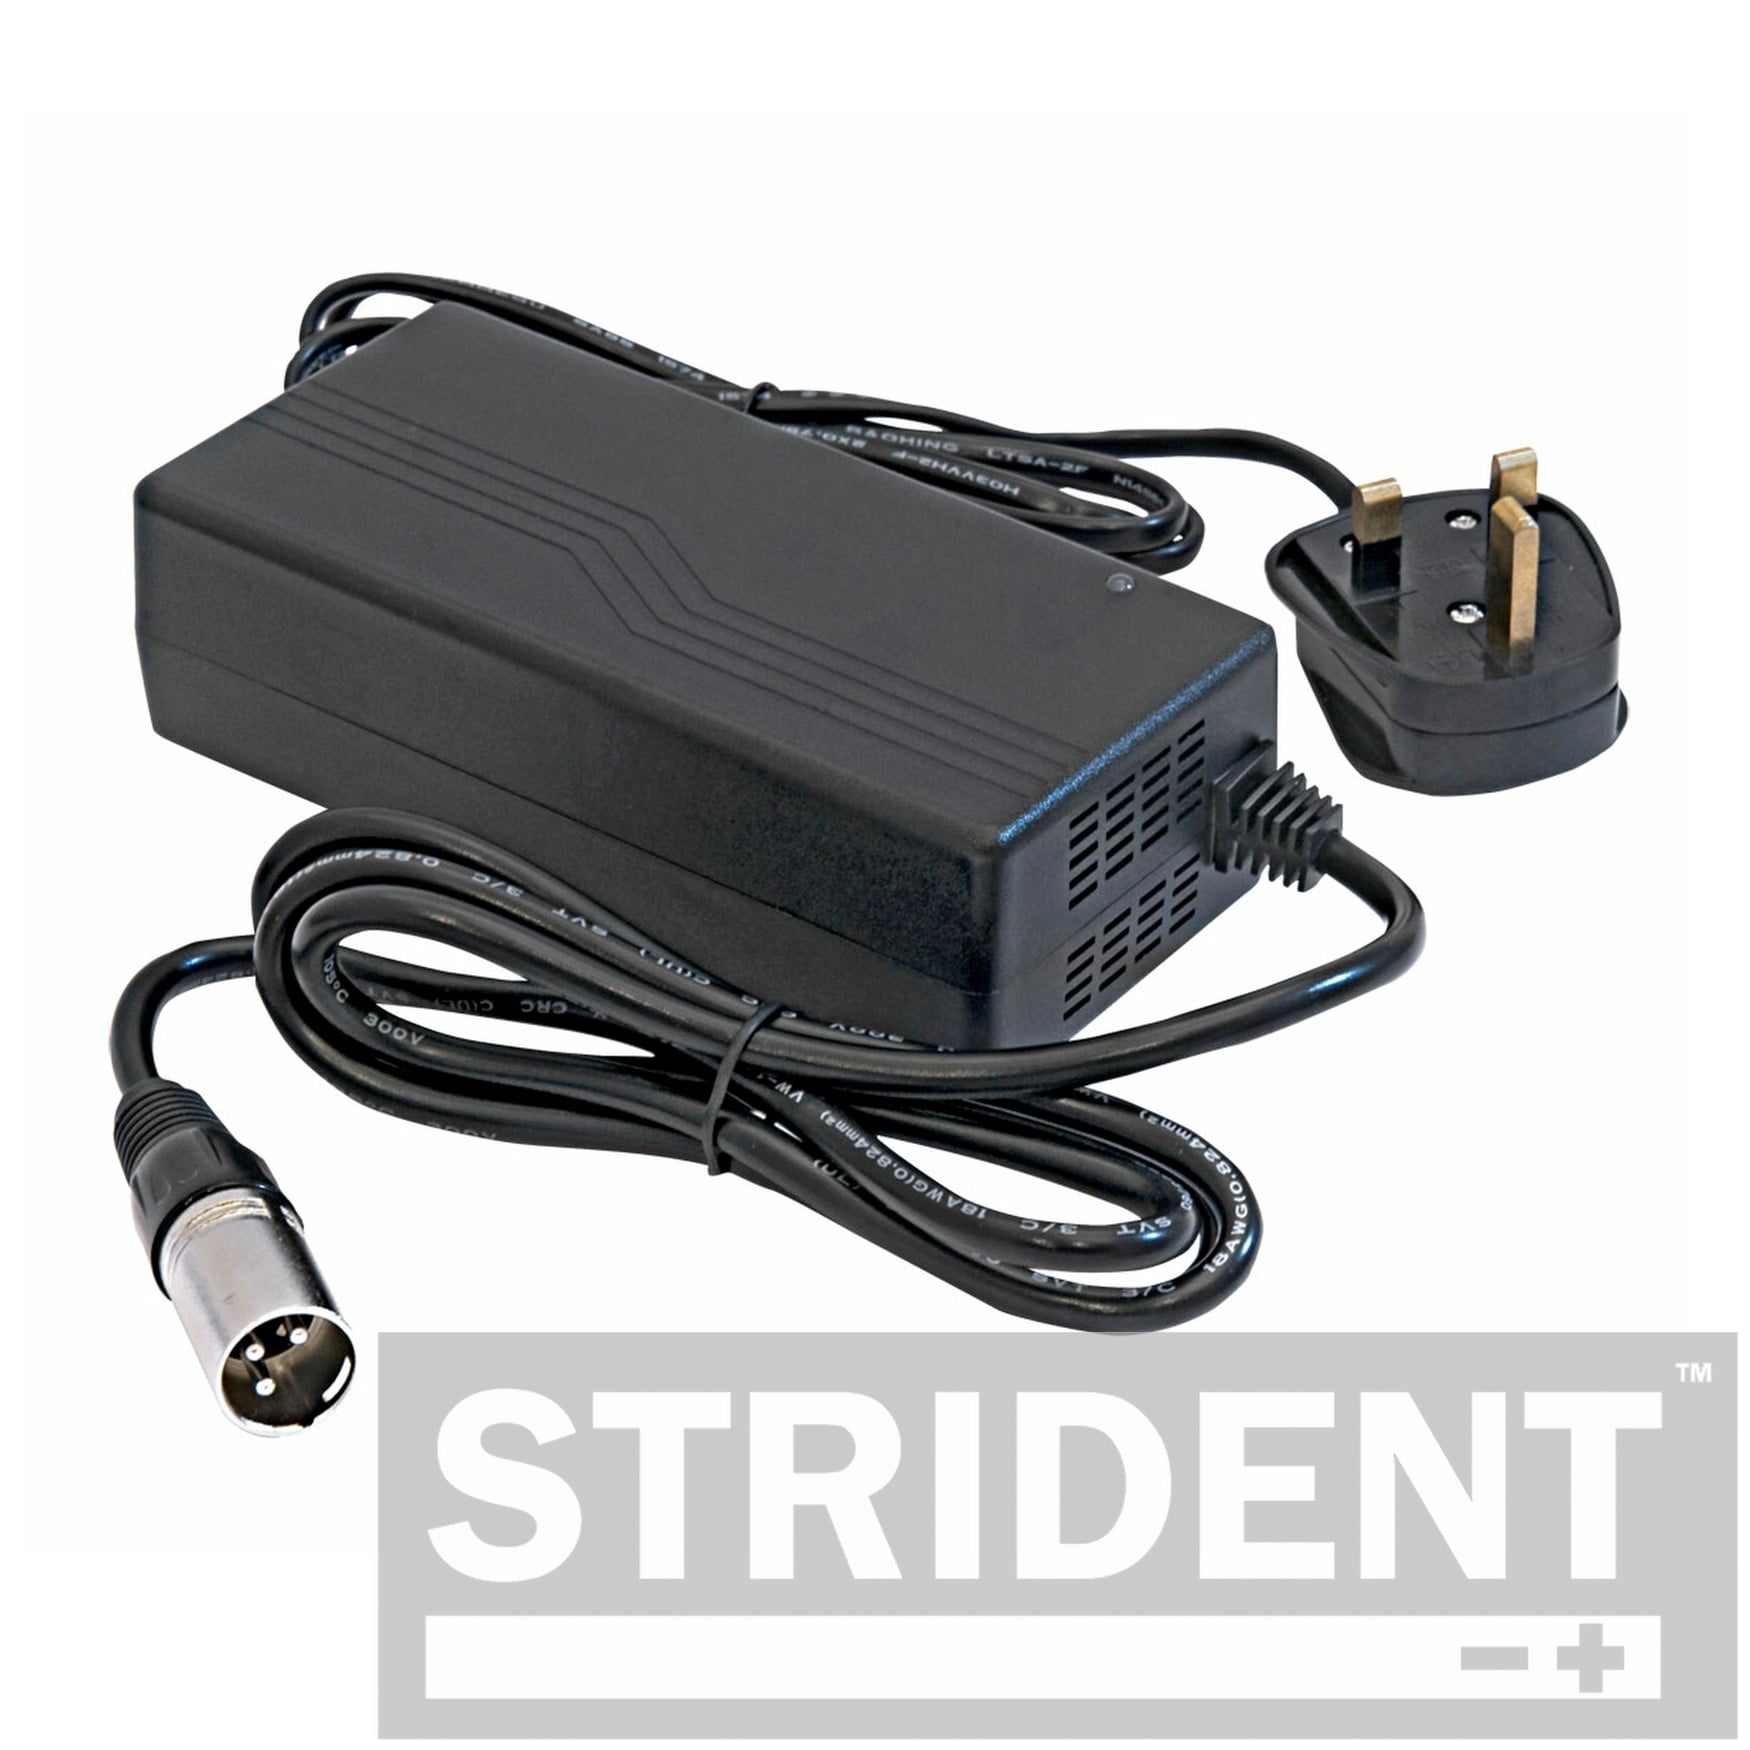 Strident 5A Lead Acid Mobility Scooter Charger